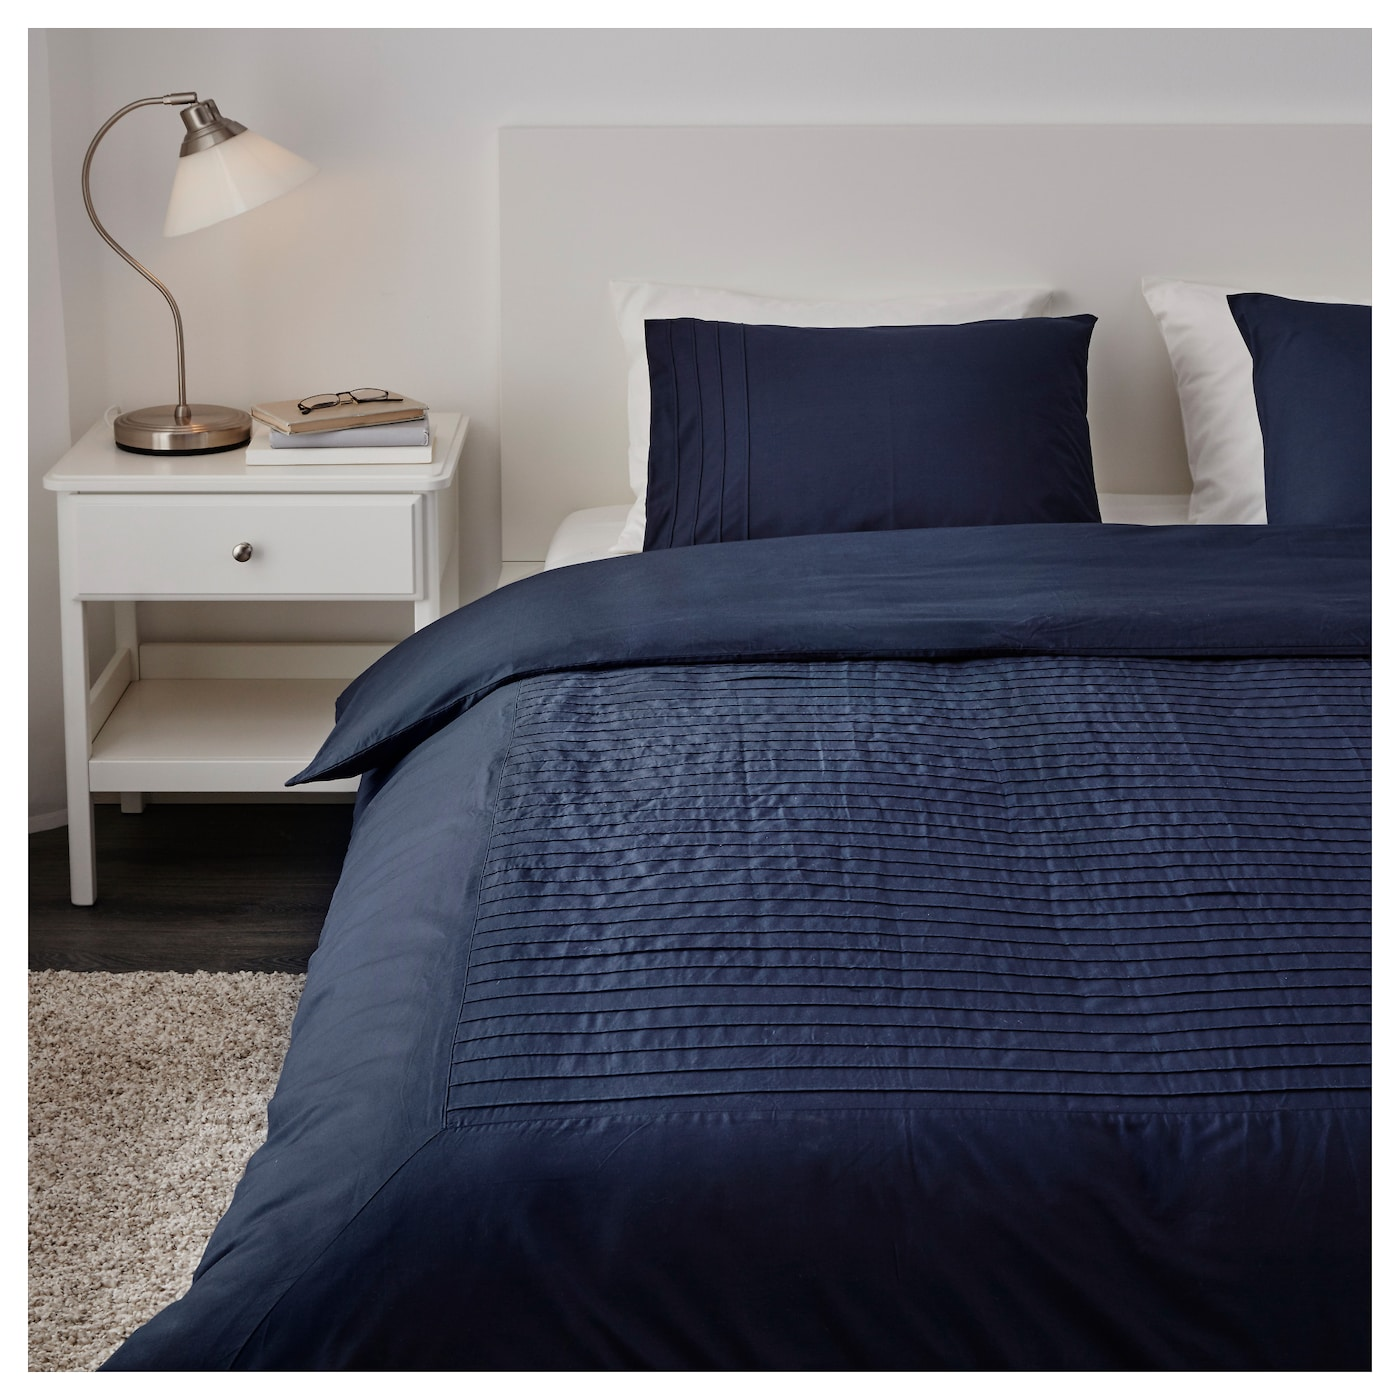 Alvine str quilt cover and 2 pillowcases blue 200x200 for Ikea blue bed